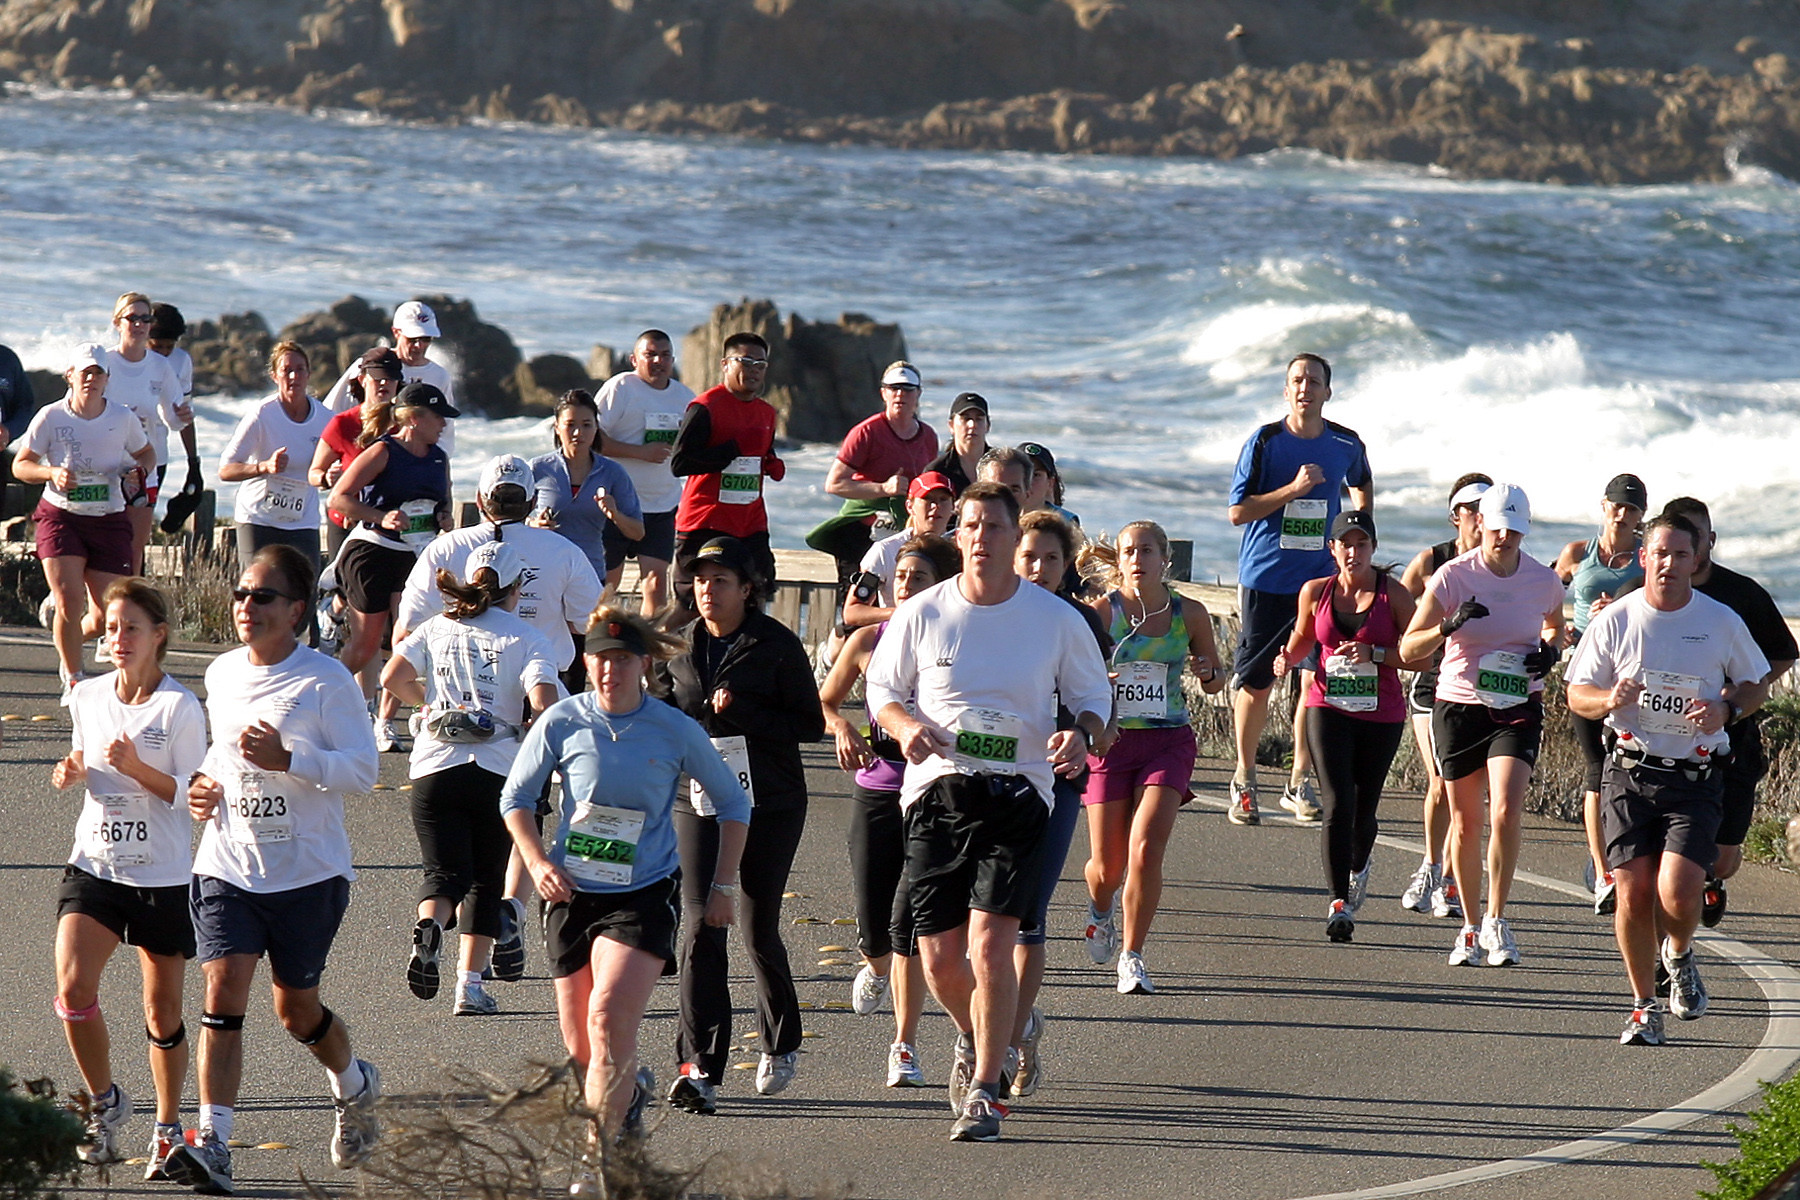 After last year's cancellation, the big news heading into the weekend of the Monterey Bay Half Marathon is that the race is on for Sunday